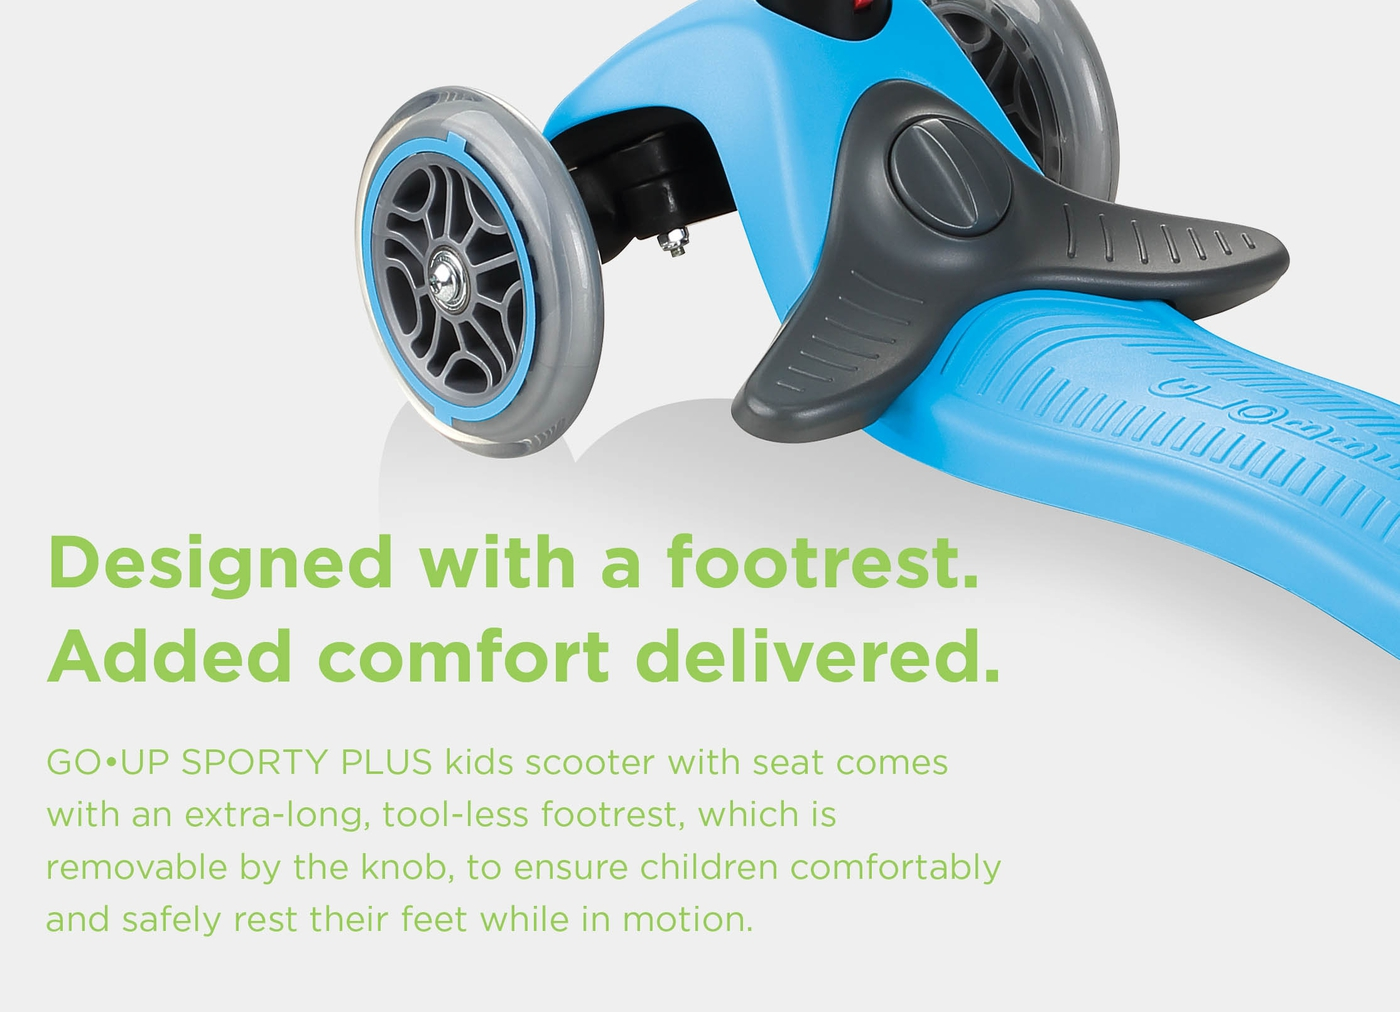 Designed with a footrest. Added comfort delivered.